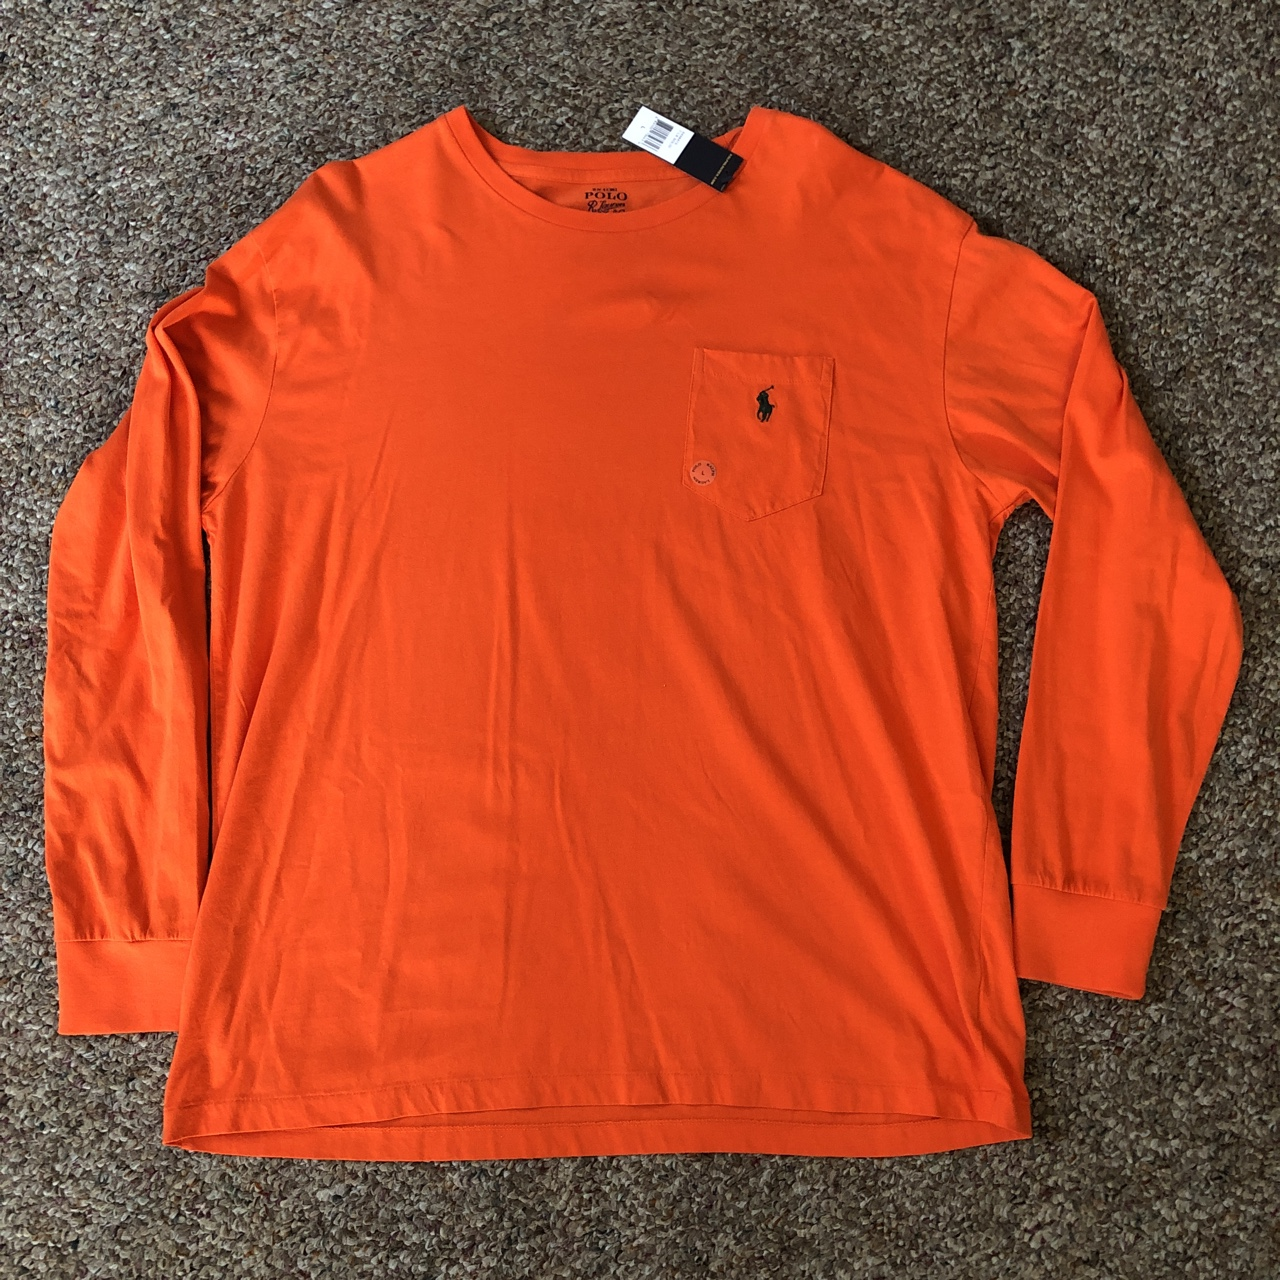 d65f47e8 @wurevolution. 11 months ago. West Chester, United States. Polo Ralph Lauren  long sleeve shirt. New with tags. Tagged size Large.